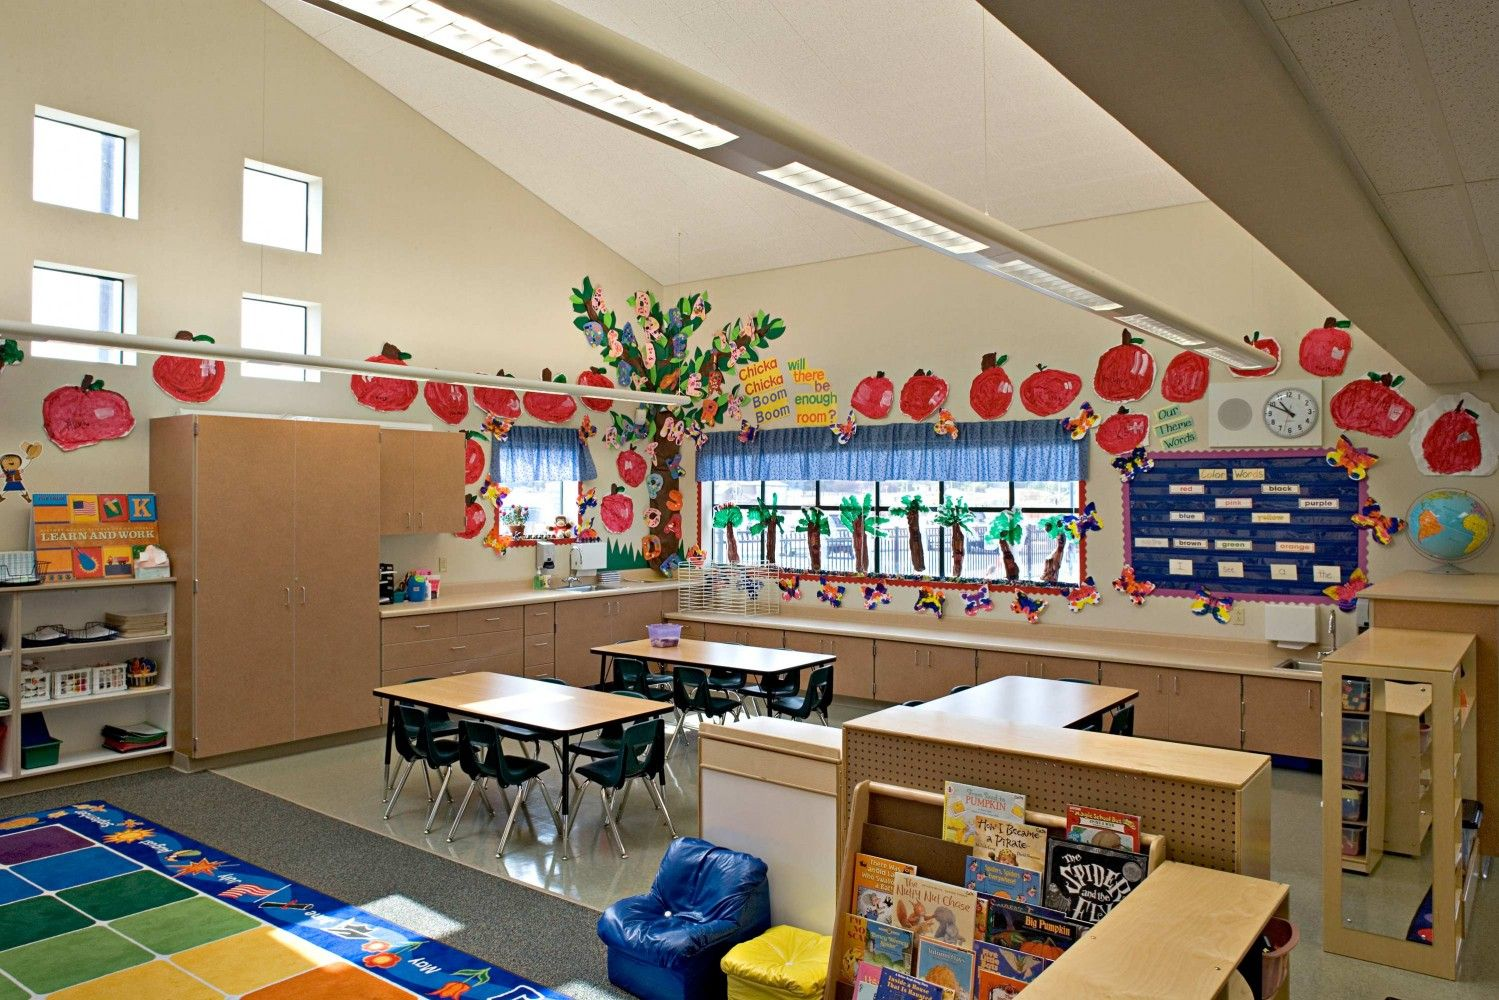 Classroom Decoration Charts For Primary School : Elementary classroom design barrett ranch